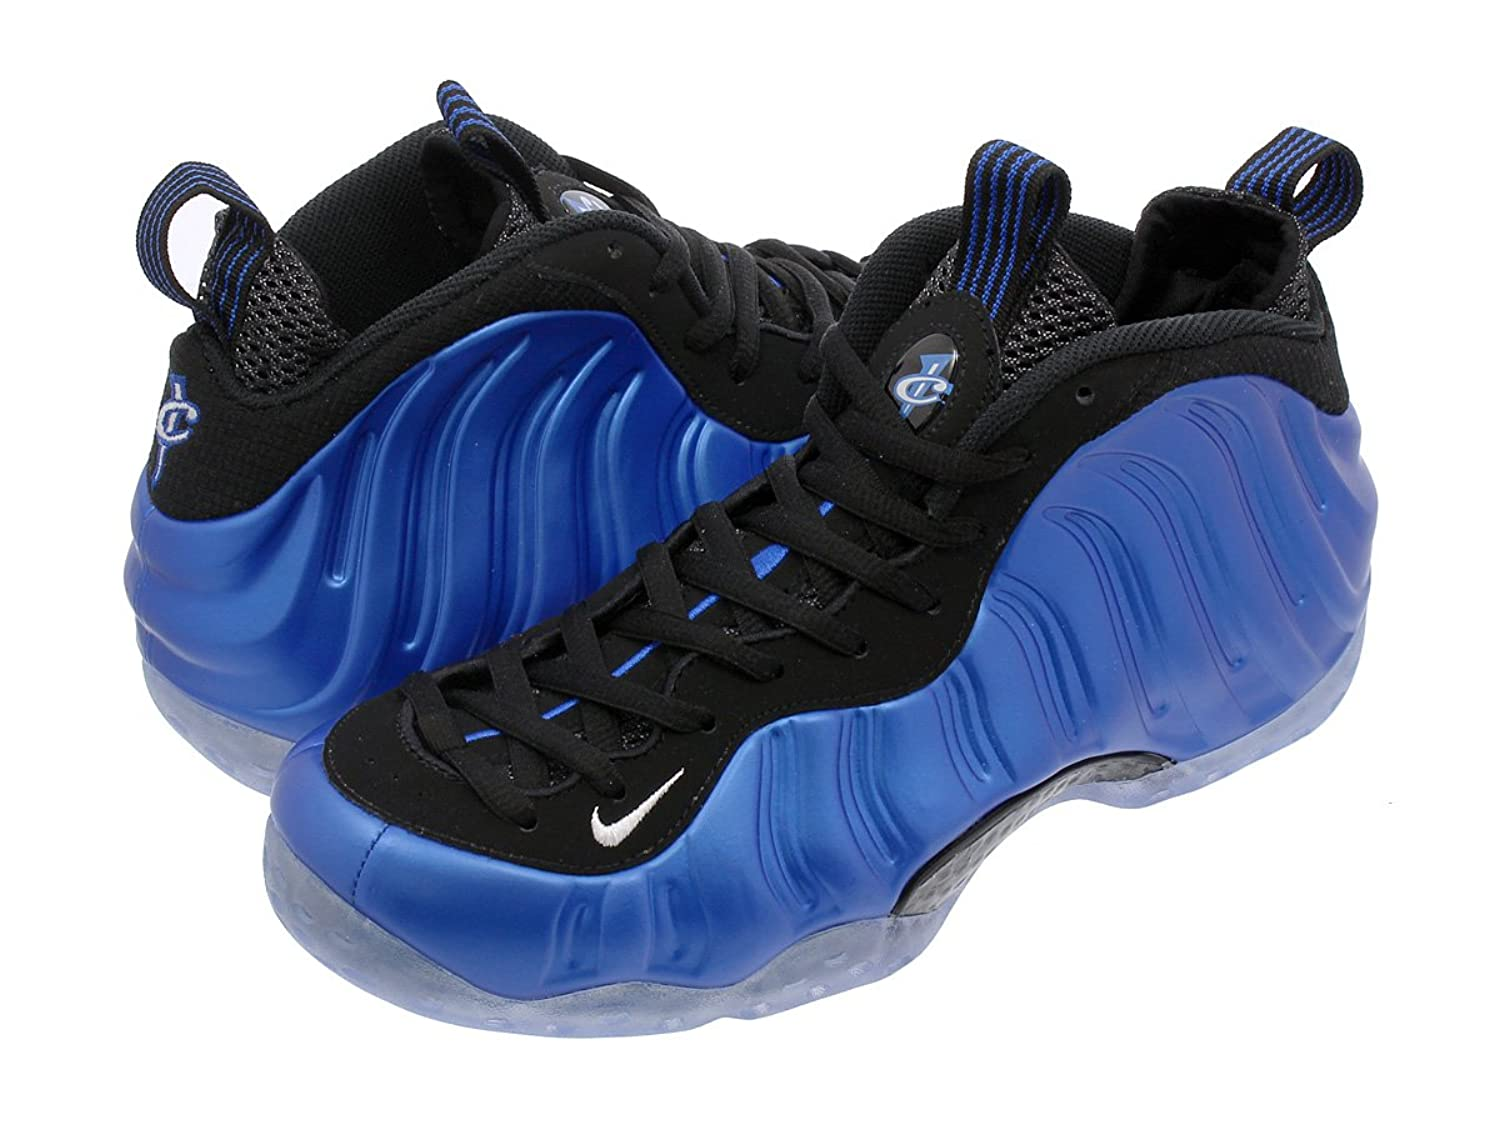 [ナイキ] NIKE AIR FOAMPOSITE ONE XX DARK NEON ROYAL/WHITE/BLACK [並行輸入品] B06XPC3XJB